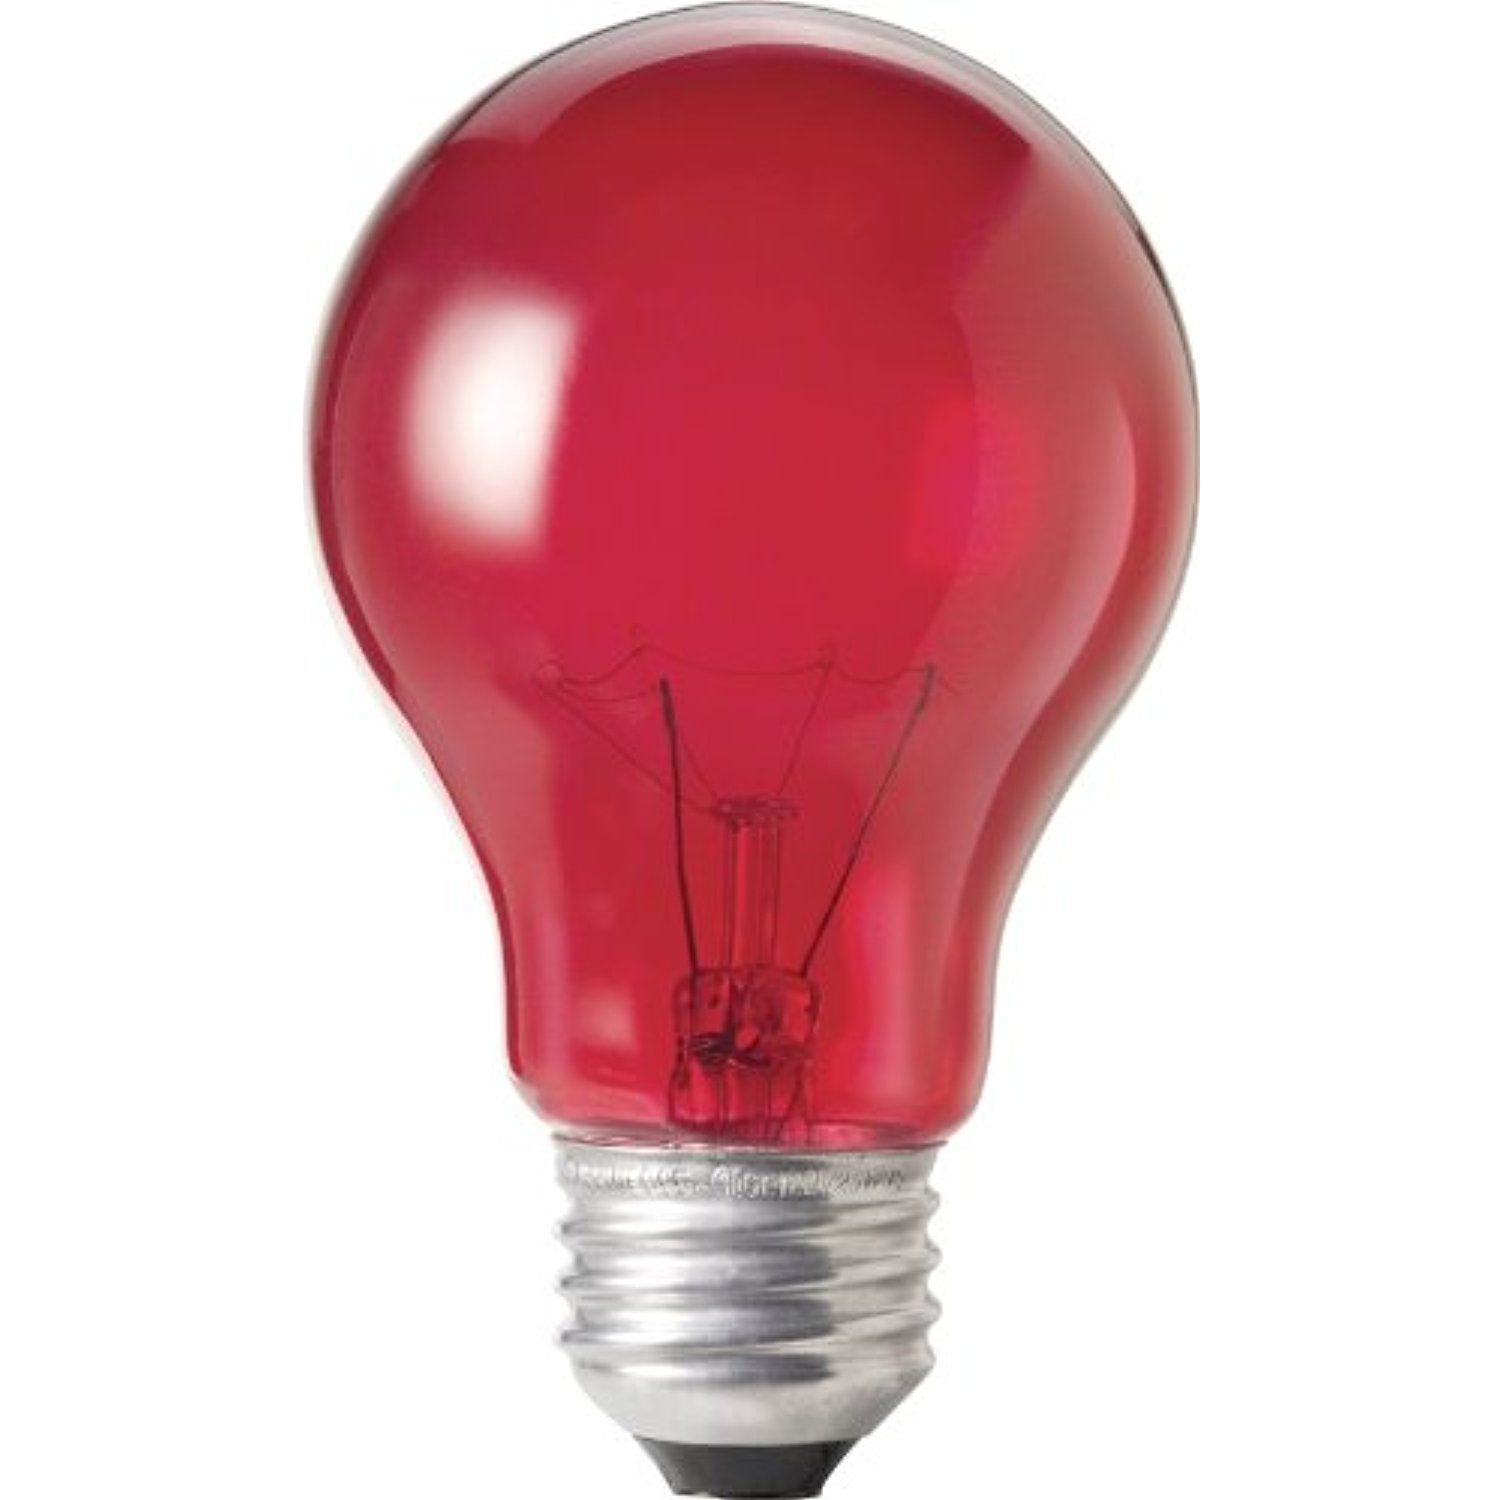 Philips 144220 25 Watt A19 Light Bulb Transparent Red Visit The